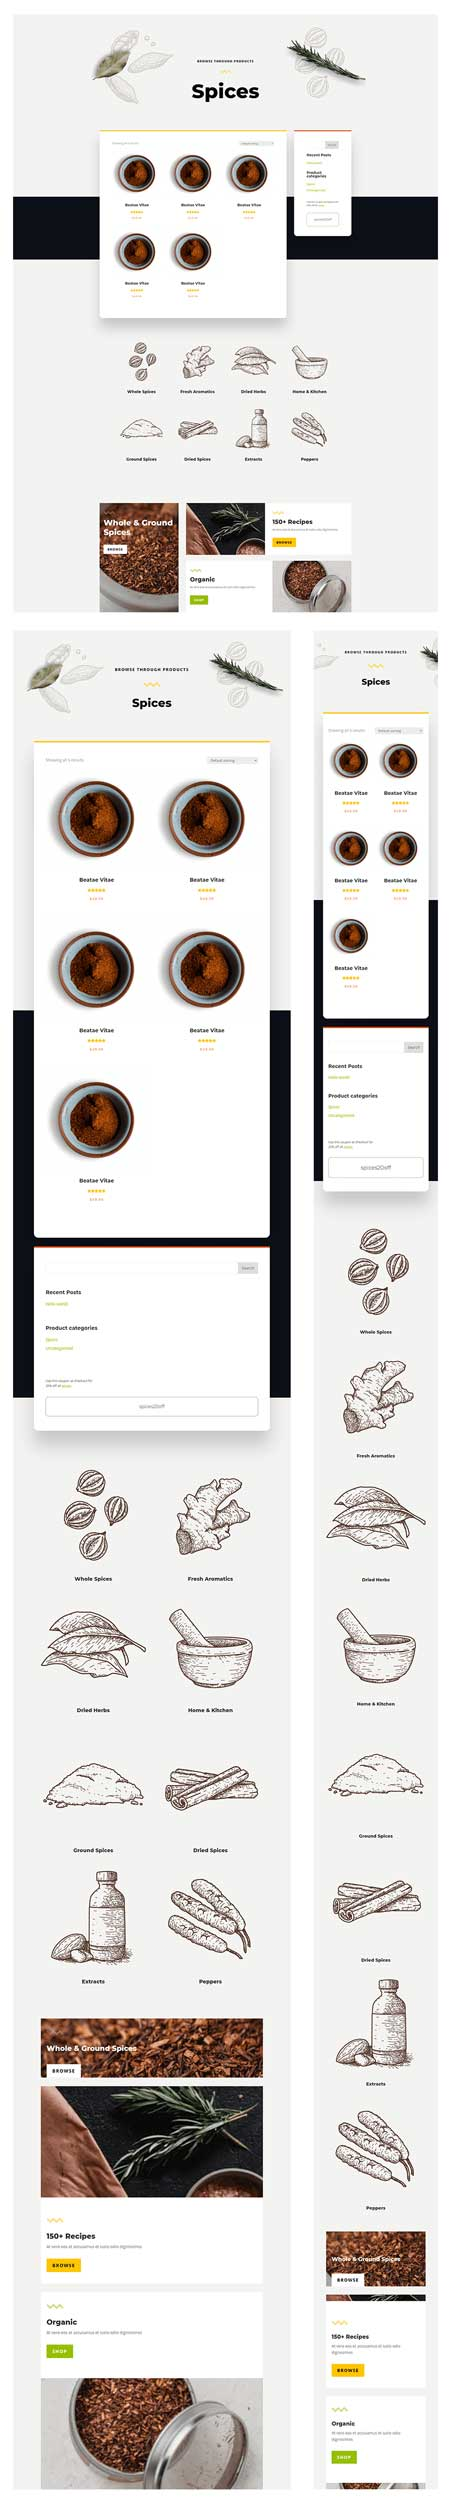 Divi Spice Shop Product Category Page Template